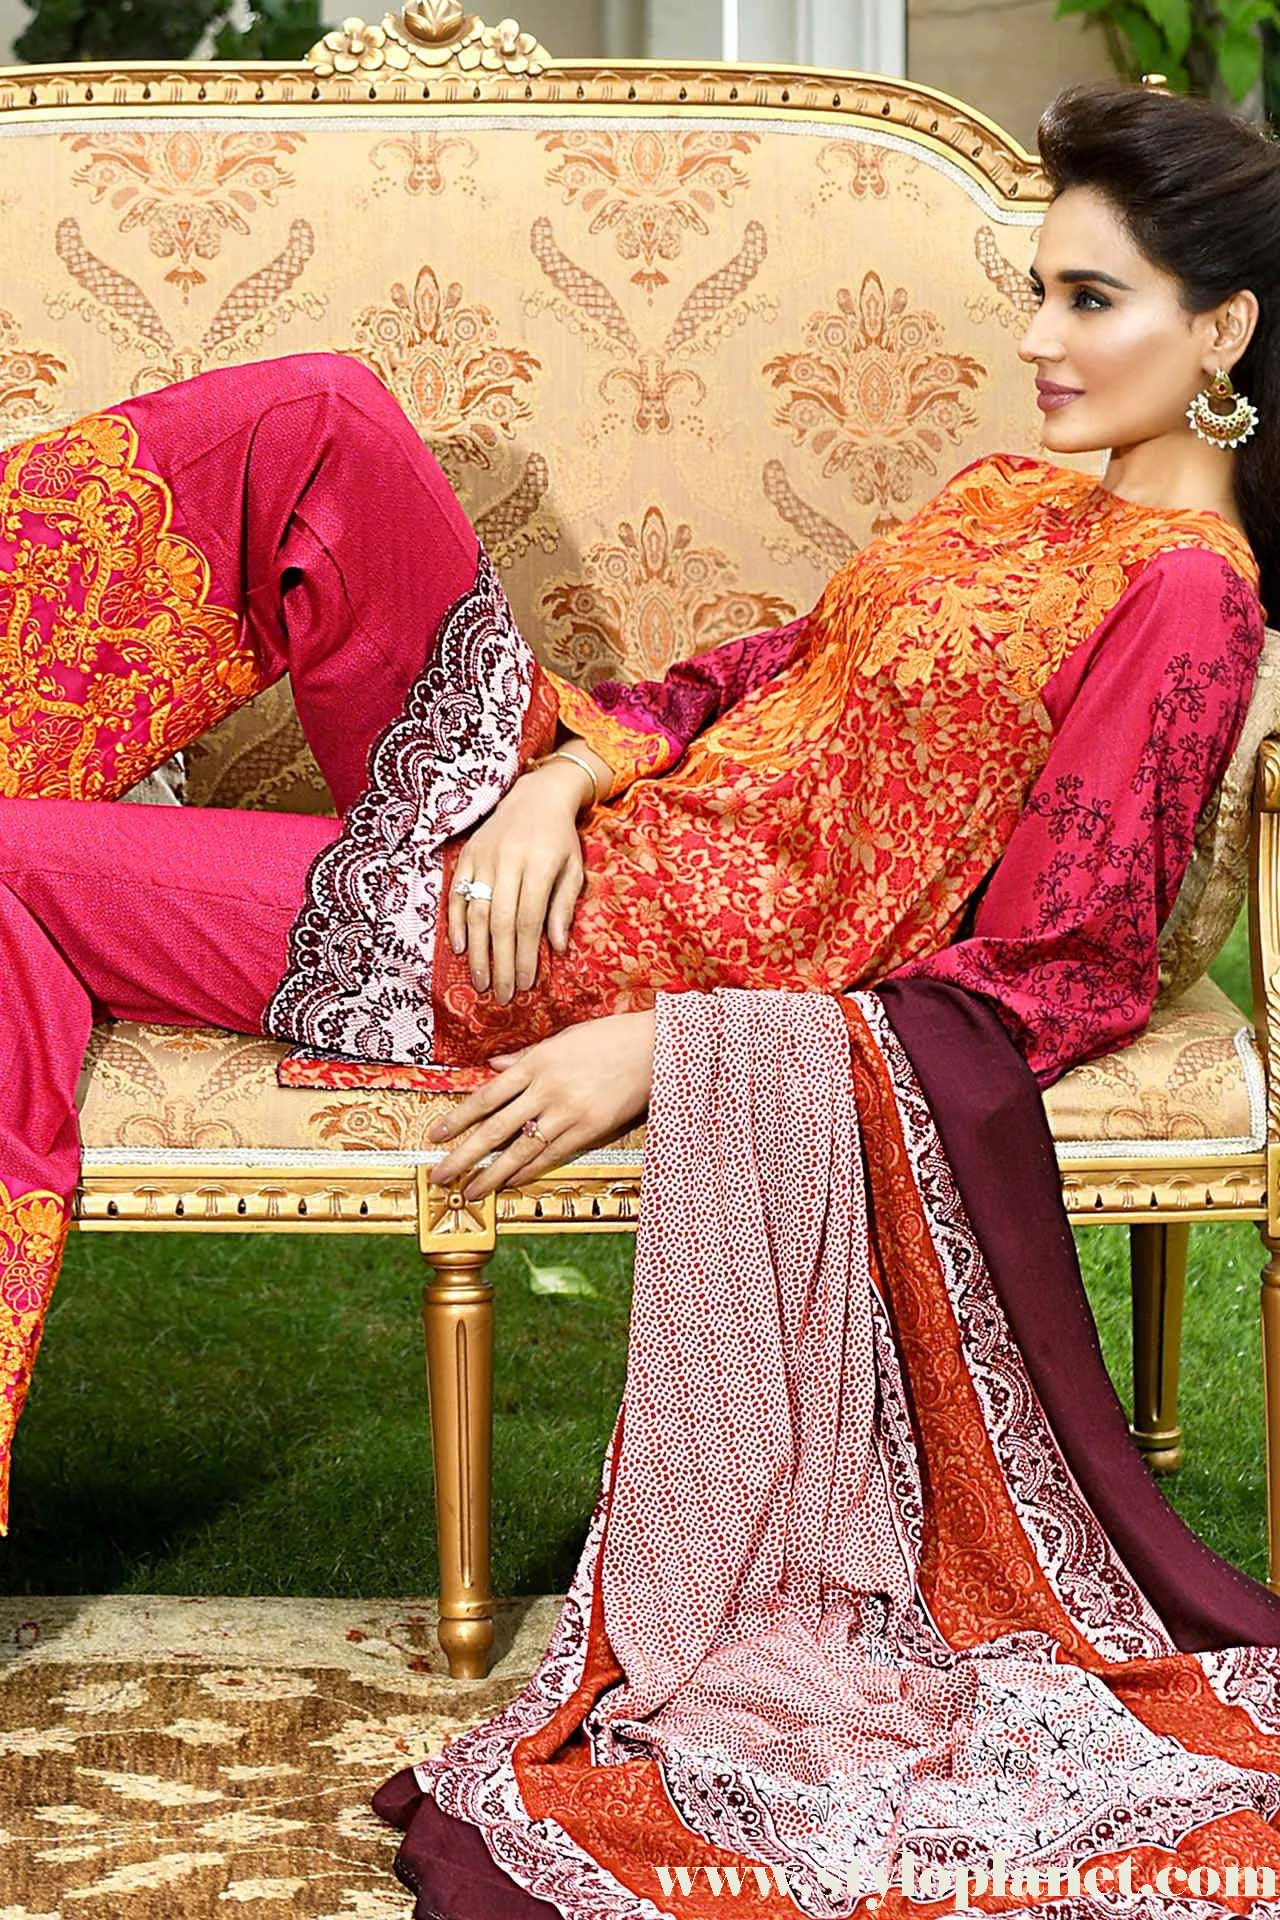 house-of-ittehad-winter-german-linen-2016-collection-12